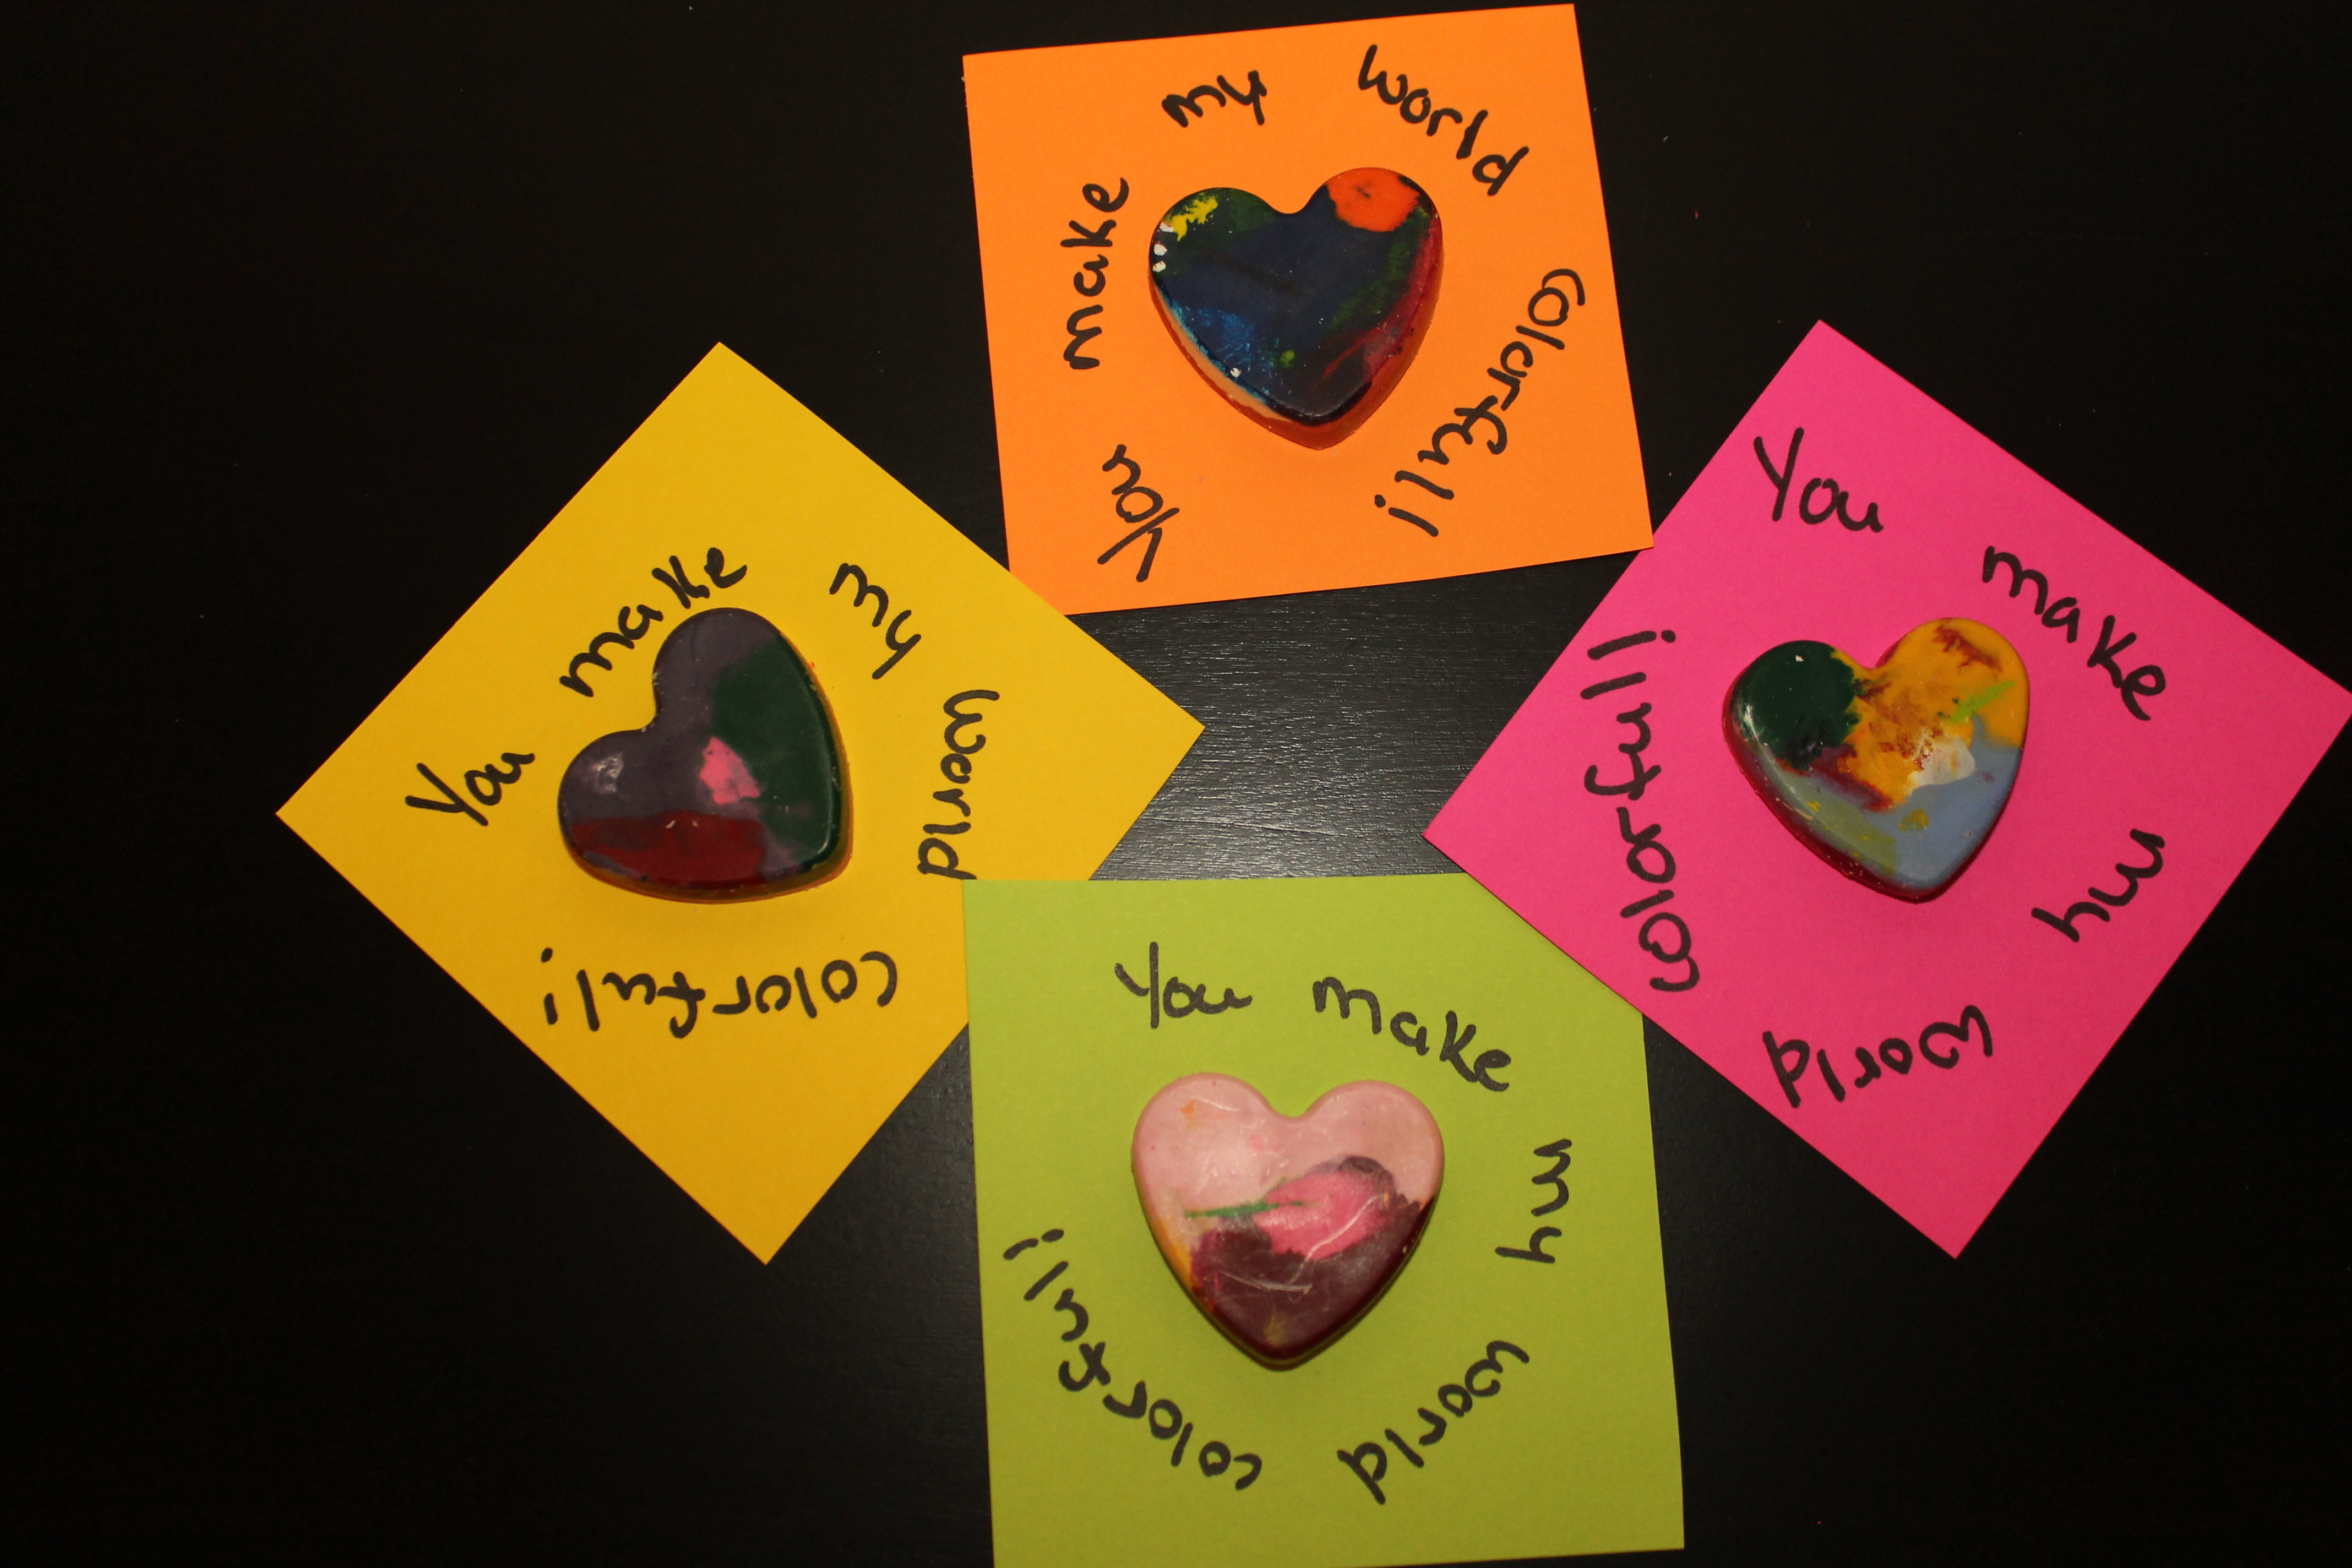 Valentines day art and crafts for preschoolers - Valentines Day Art And Crafts For Preschoolers 47